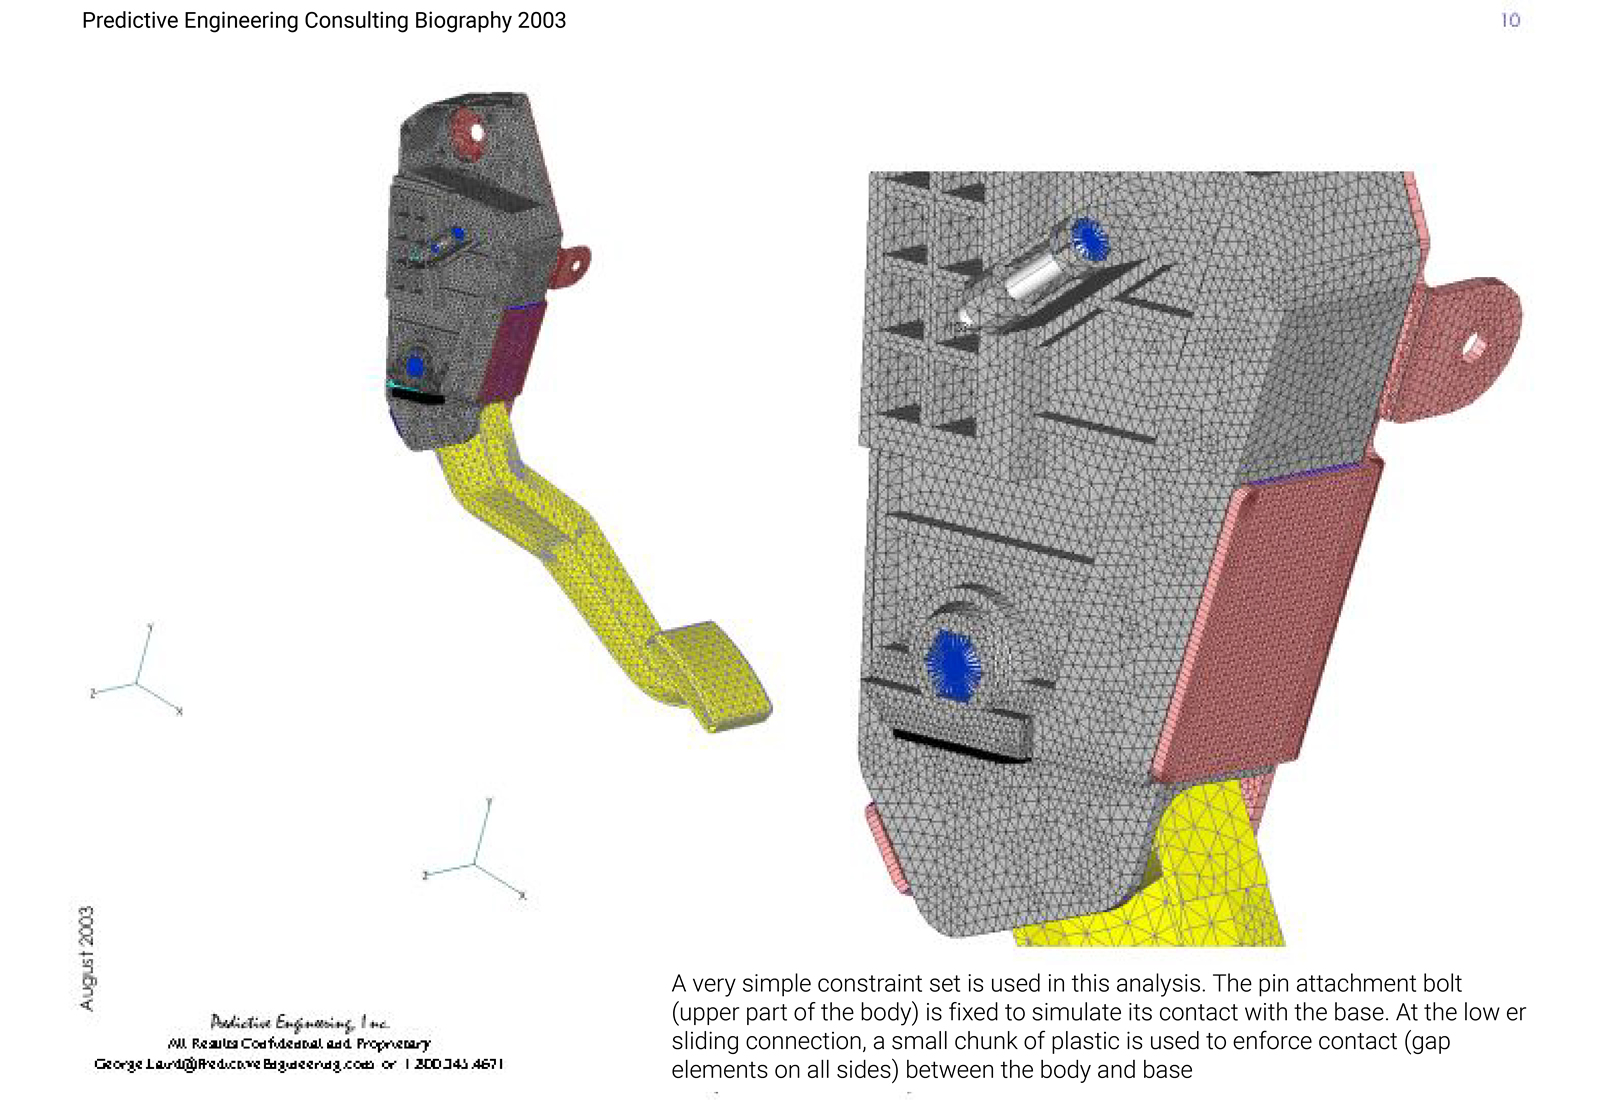 Femap model of pedal housing showing constraint set